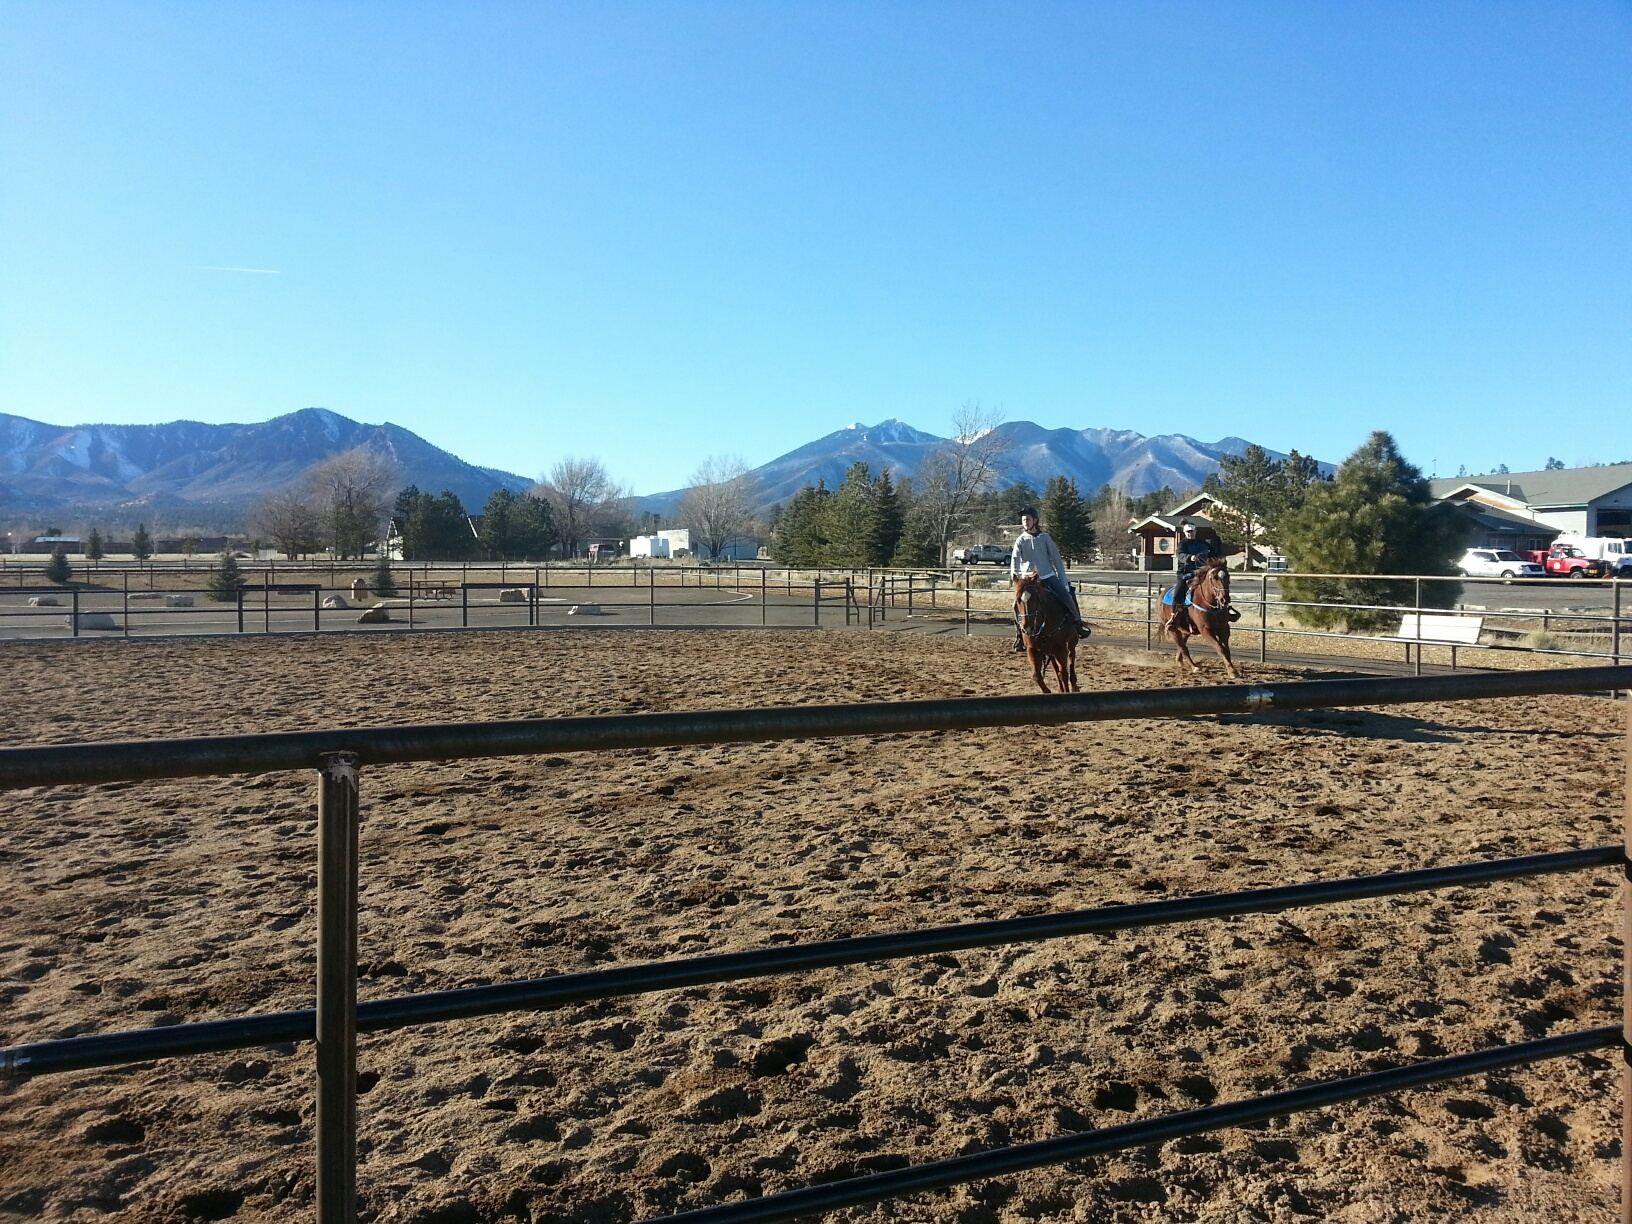 Community Equestrian Arena at Peaks View County Park